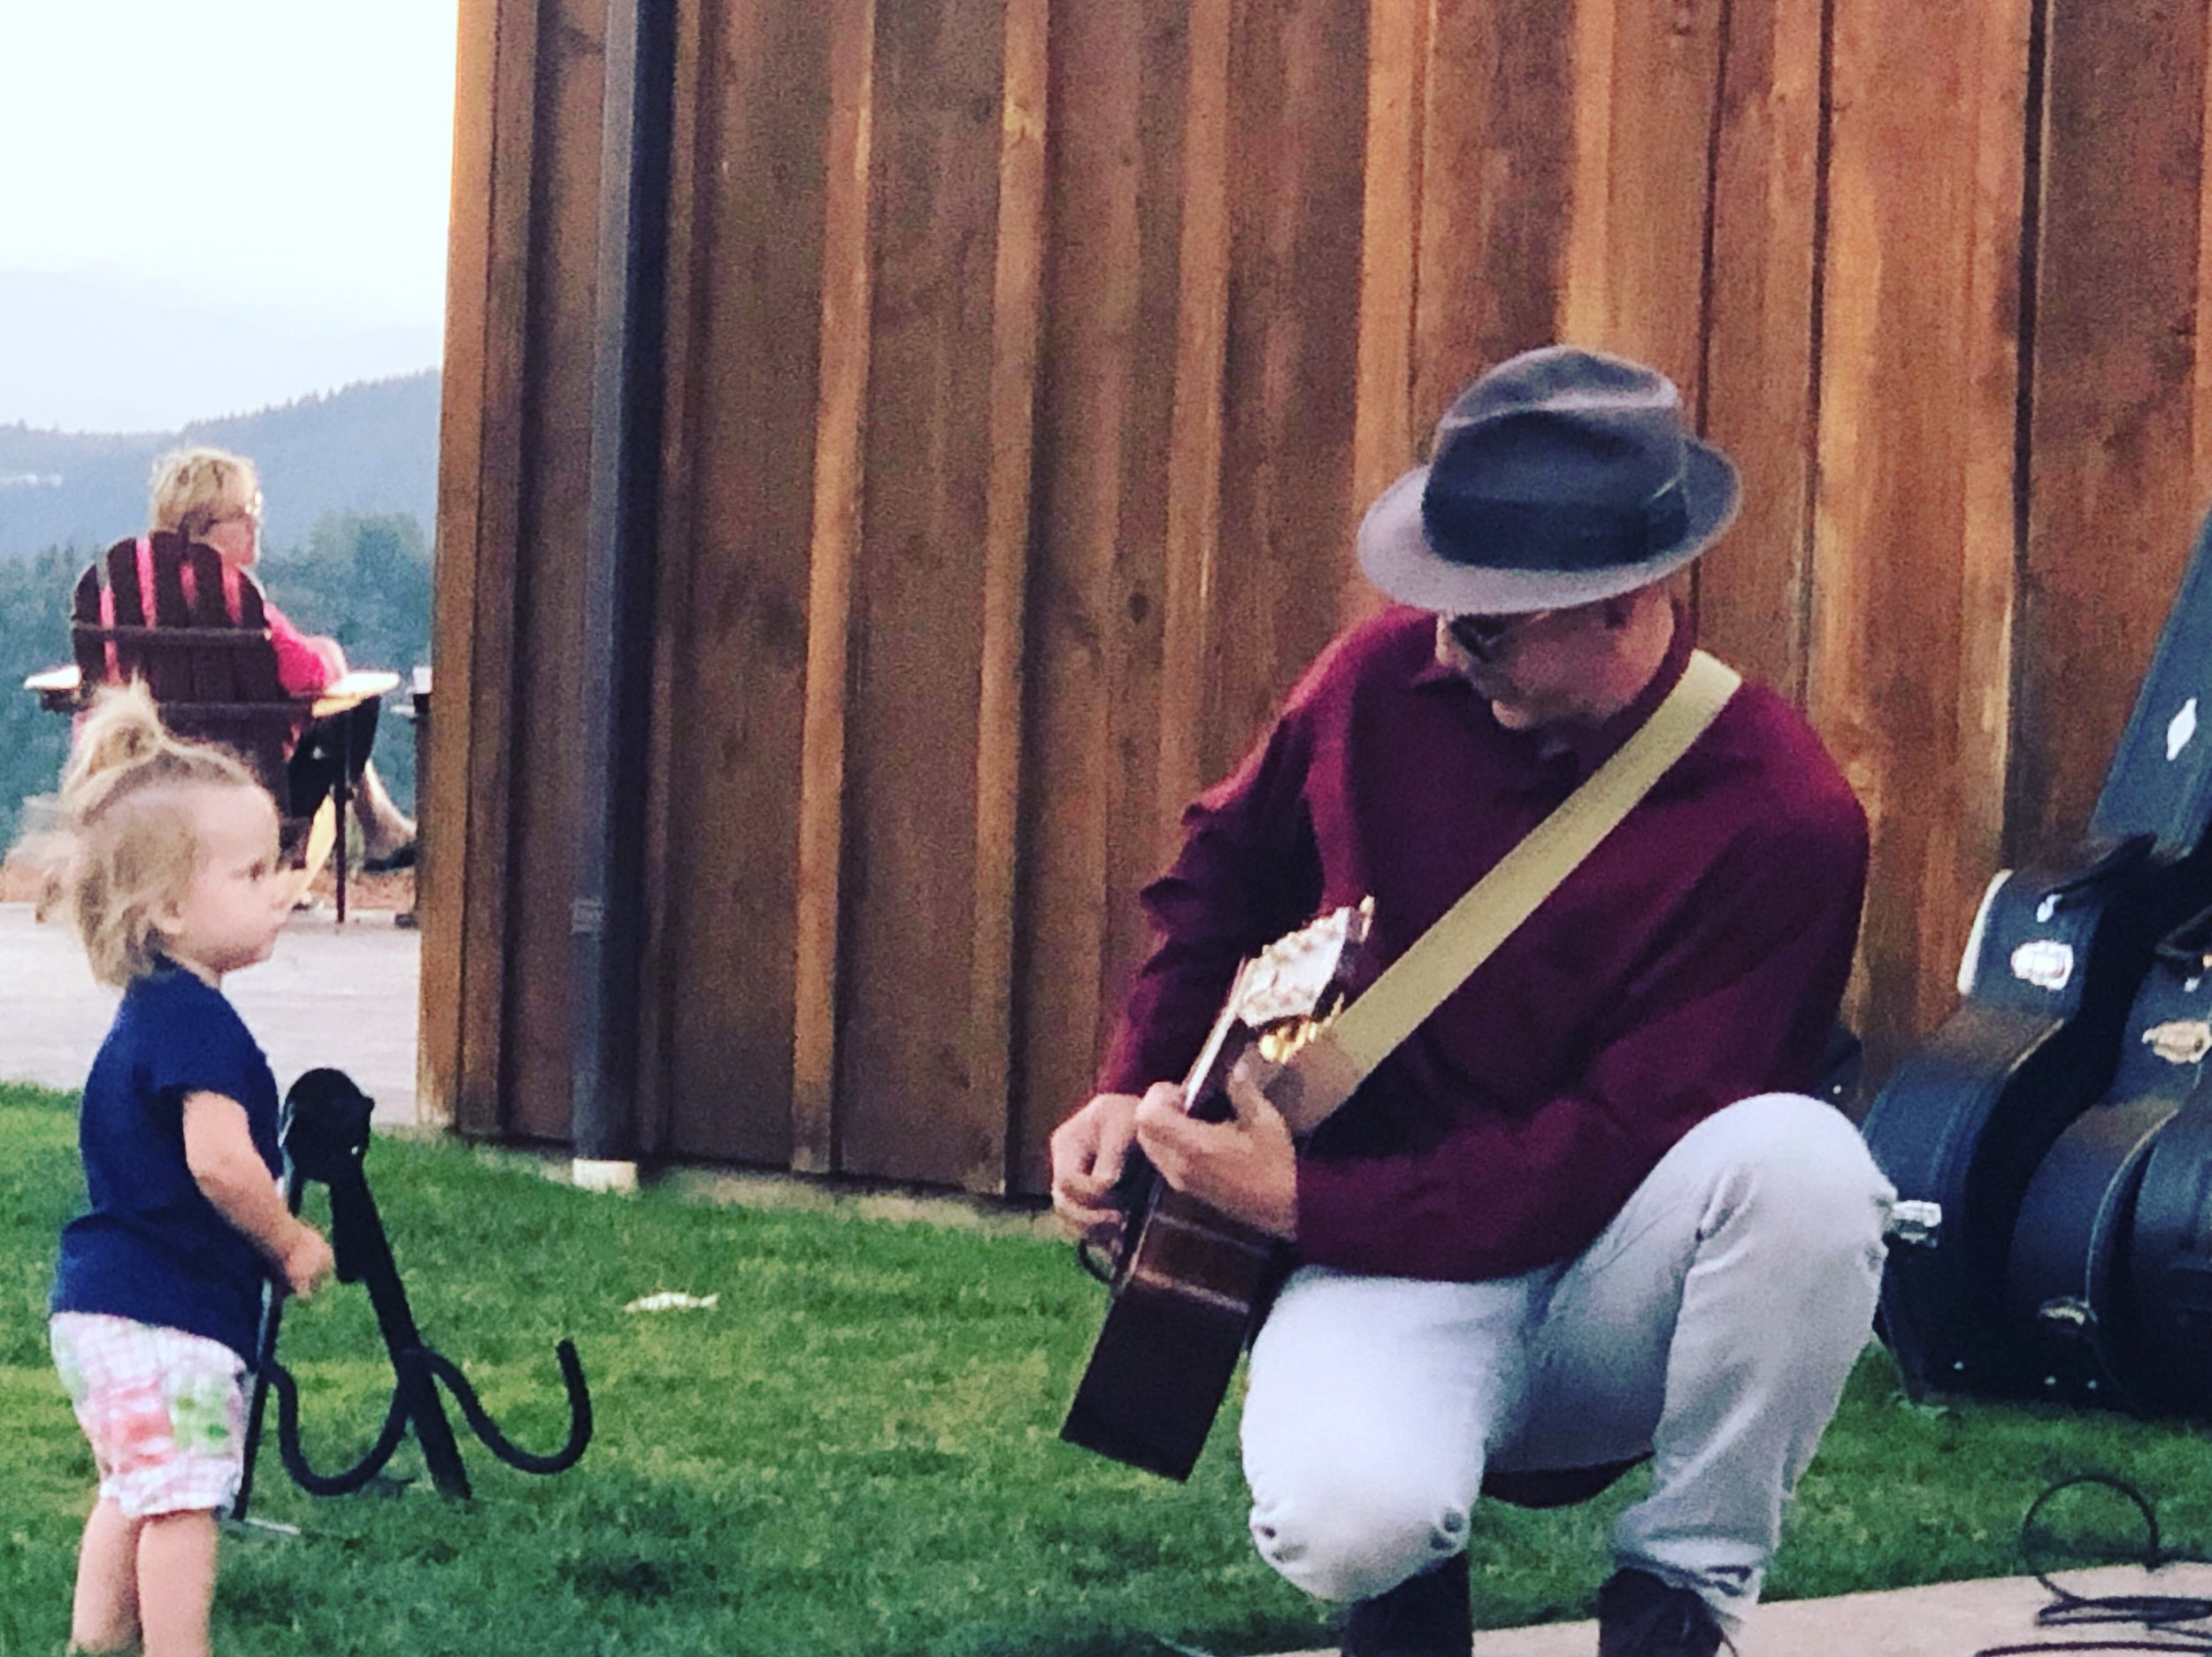 Purusa is for all ages - Zach and a fan, Youngberg Hill Winery 9/4/19